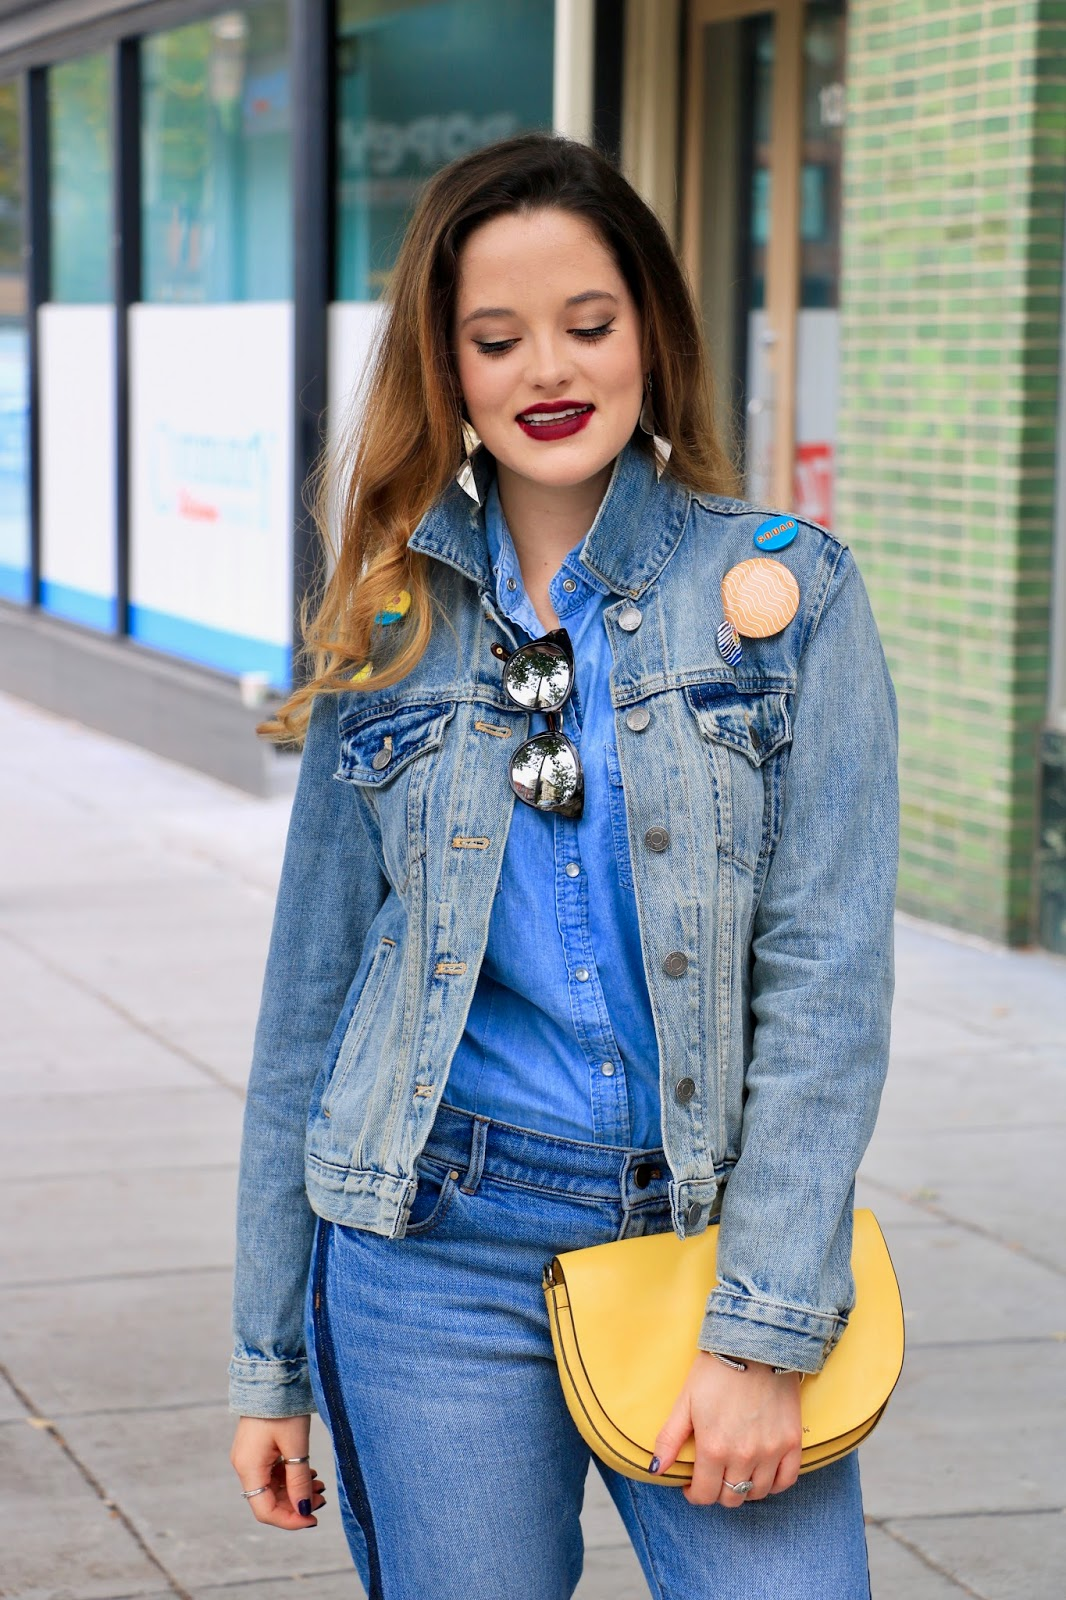 Nyc fashion blogger Kathleen Harper of Kat's Fashion Fix